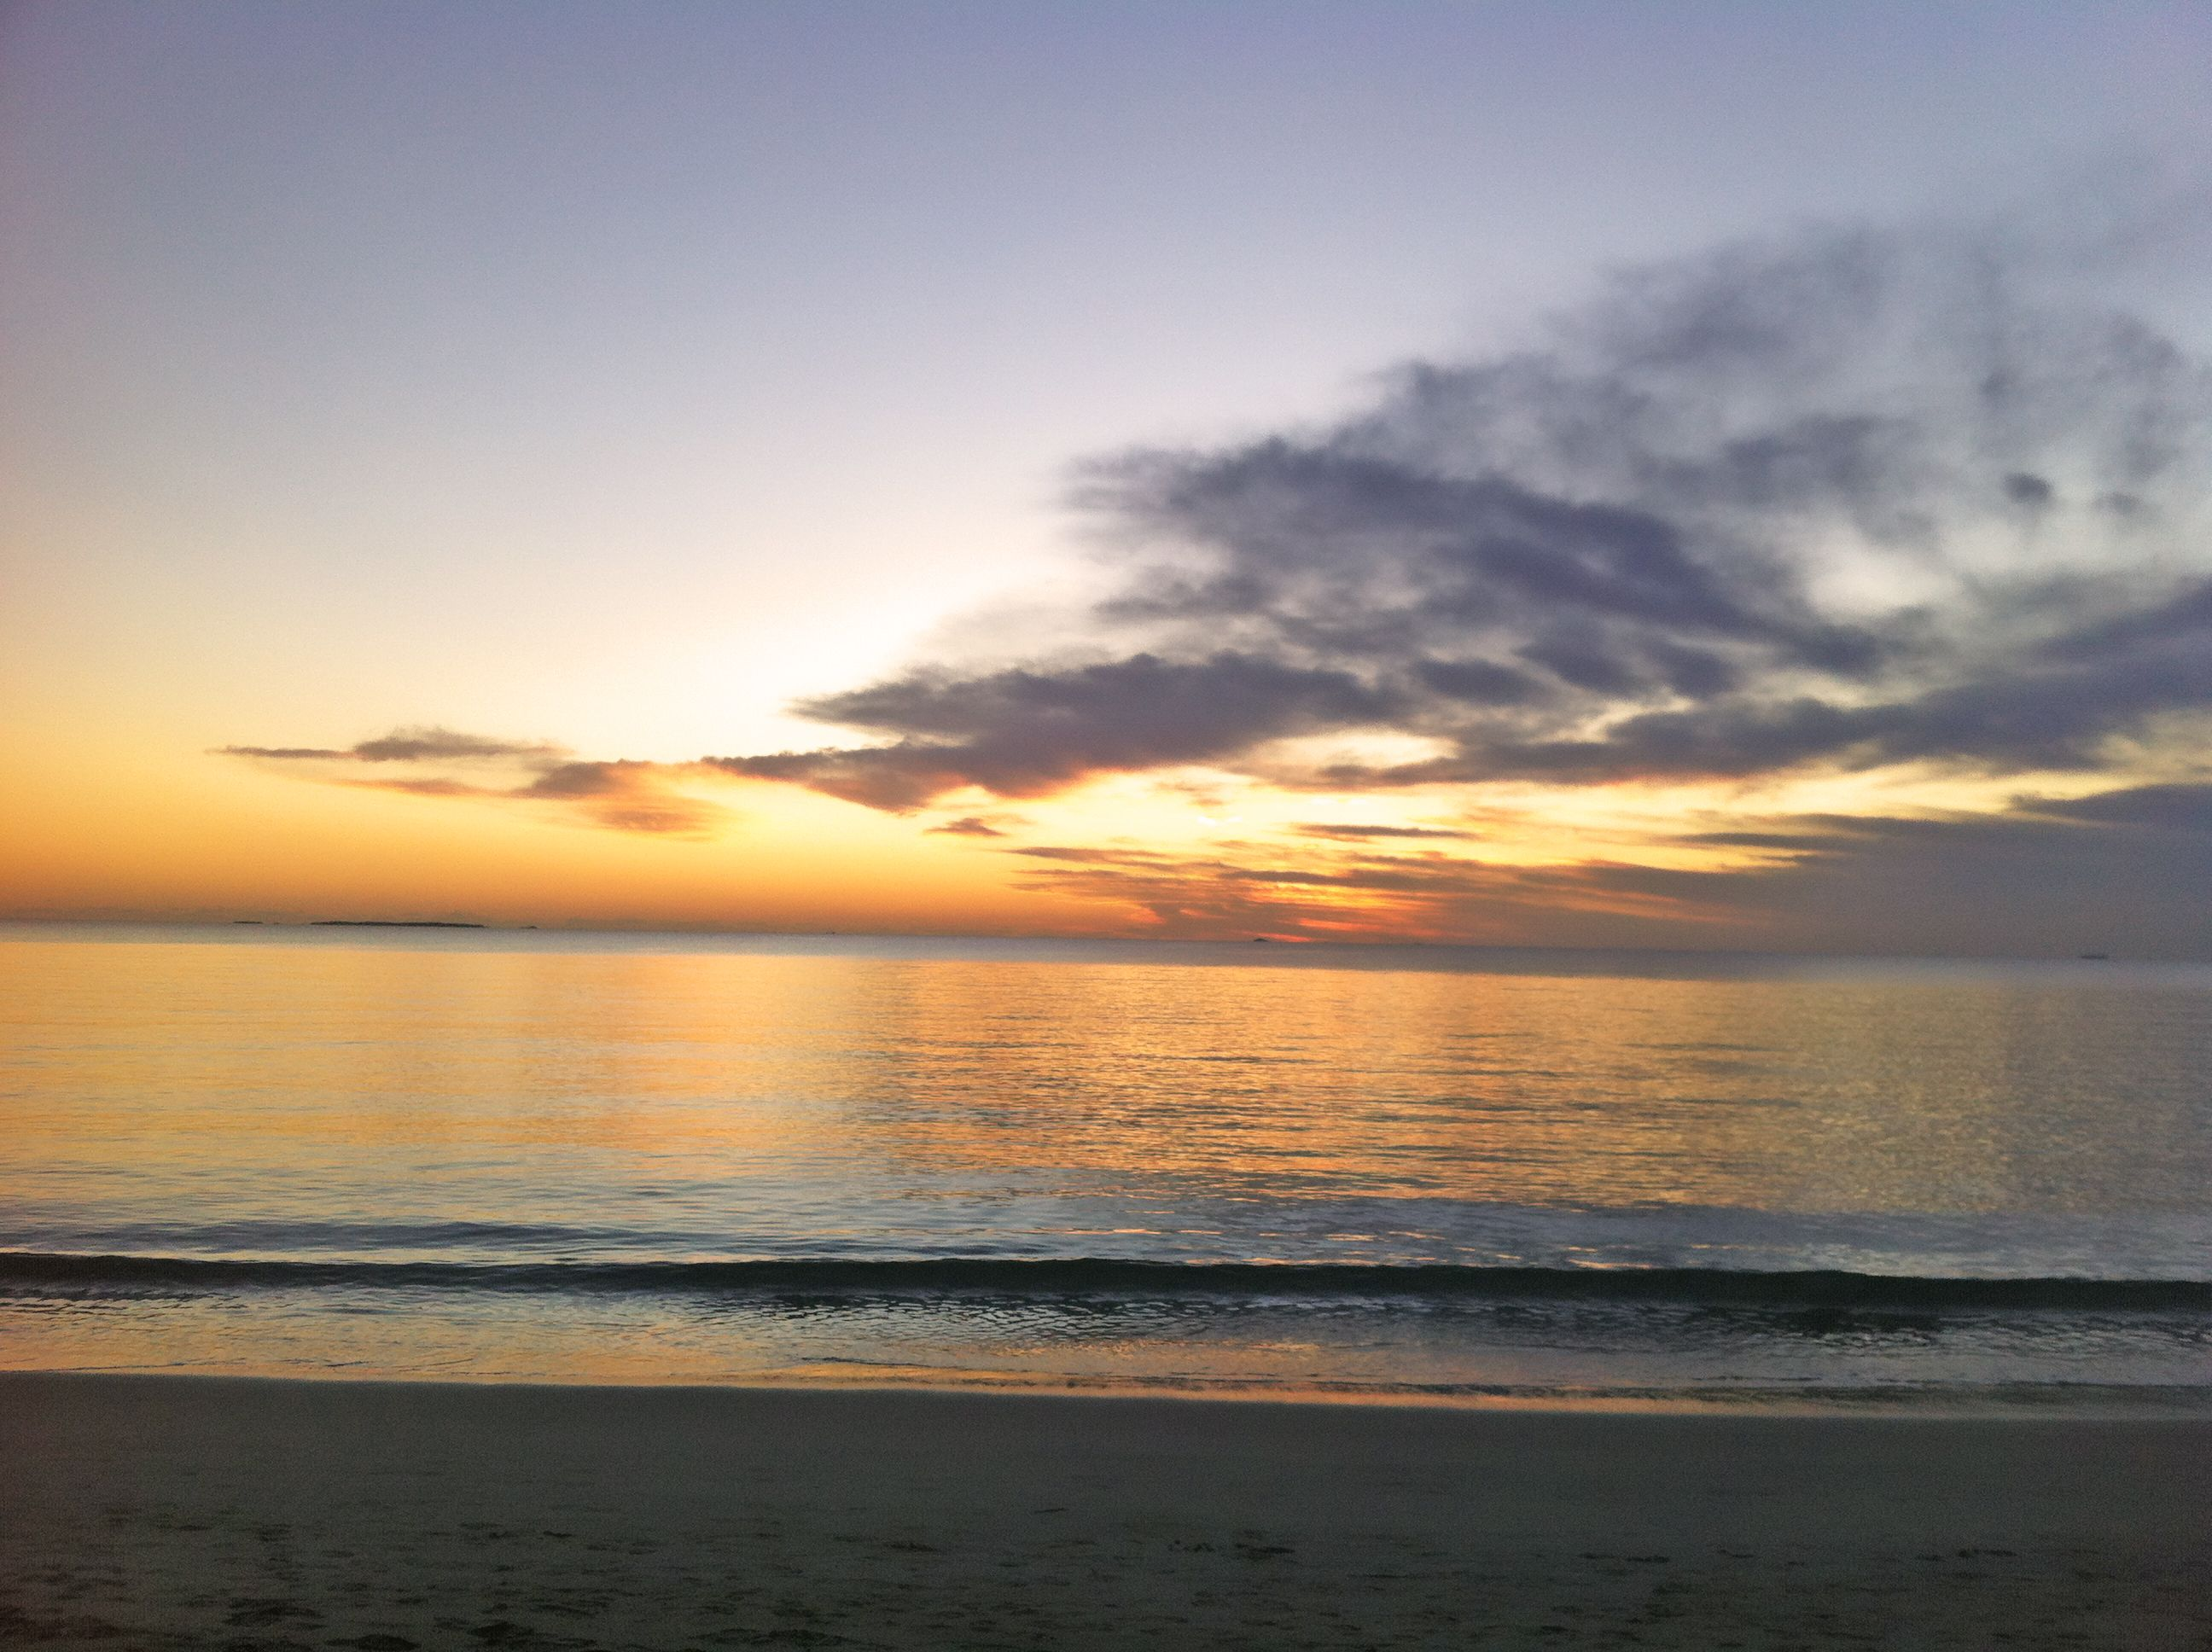 Just after sunset at Coogee beach, WA \